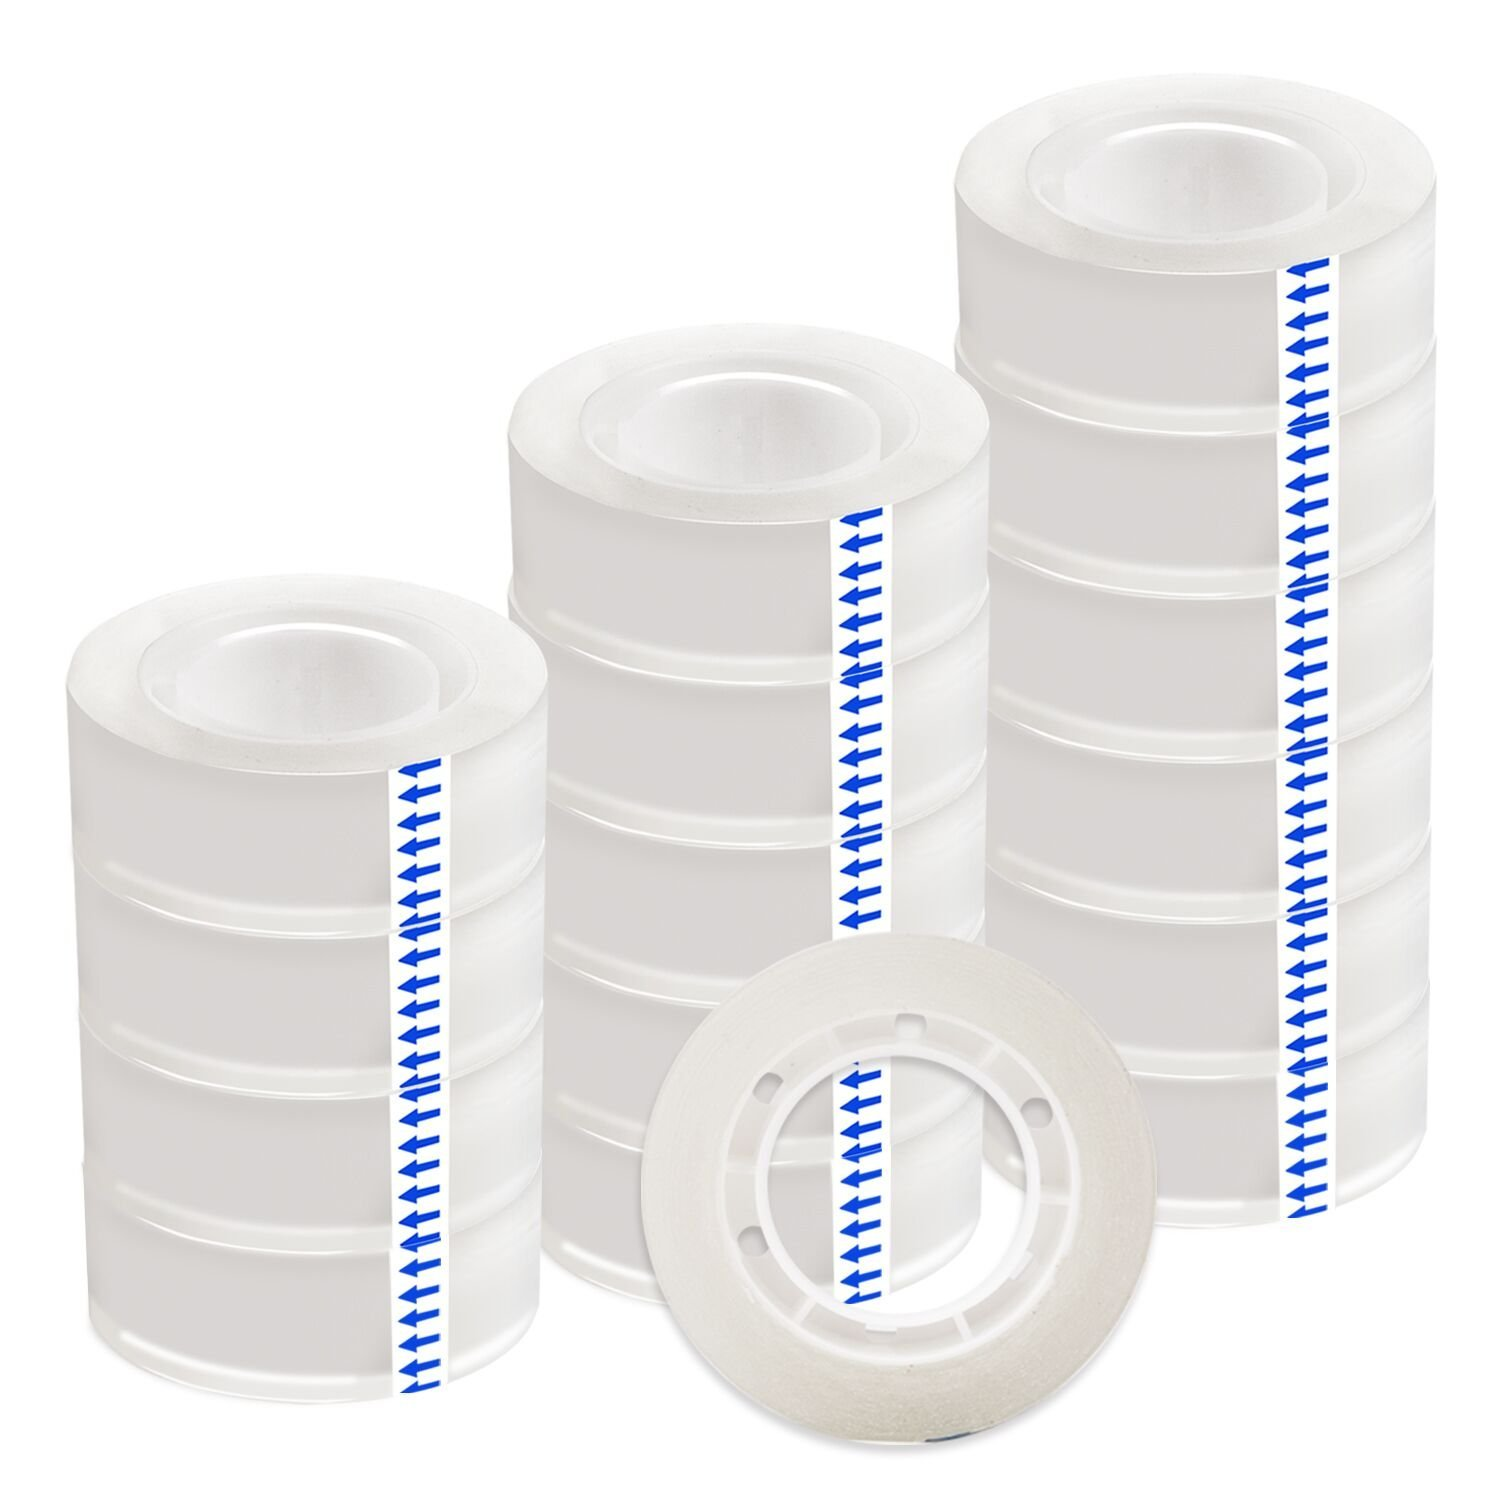 LUTER Clear Tape Transparent Tape Tape Refill 18mm 3/4 inches Tape Rolls for Office, Home, School (16 Rolls)